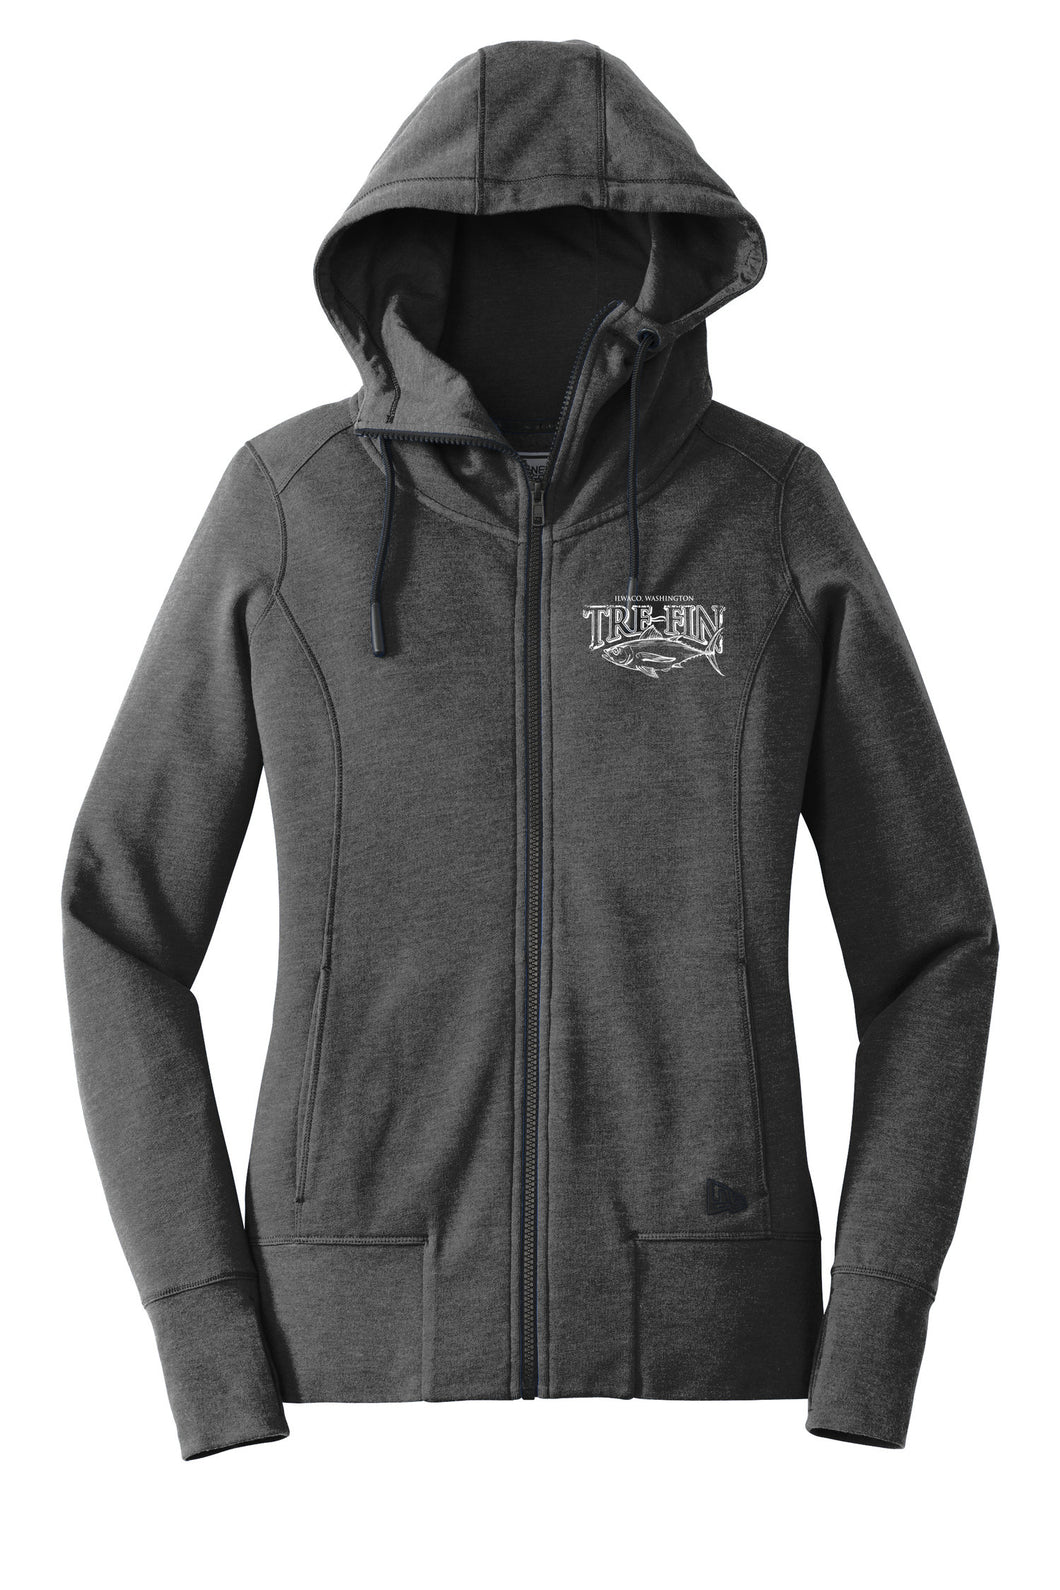 Women's Heritage Logo Full-Zip Hoodie Sweatshirt in Heathered Charcoal